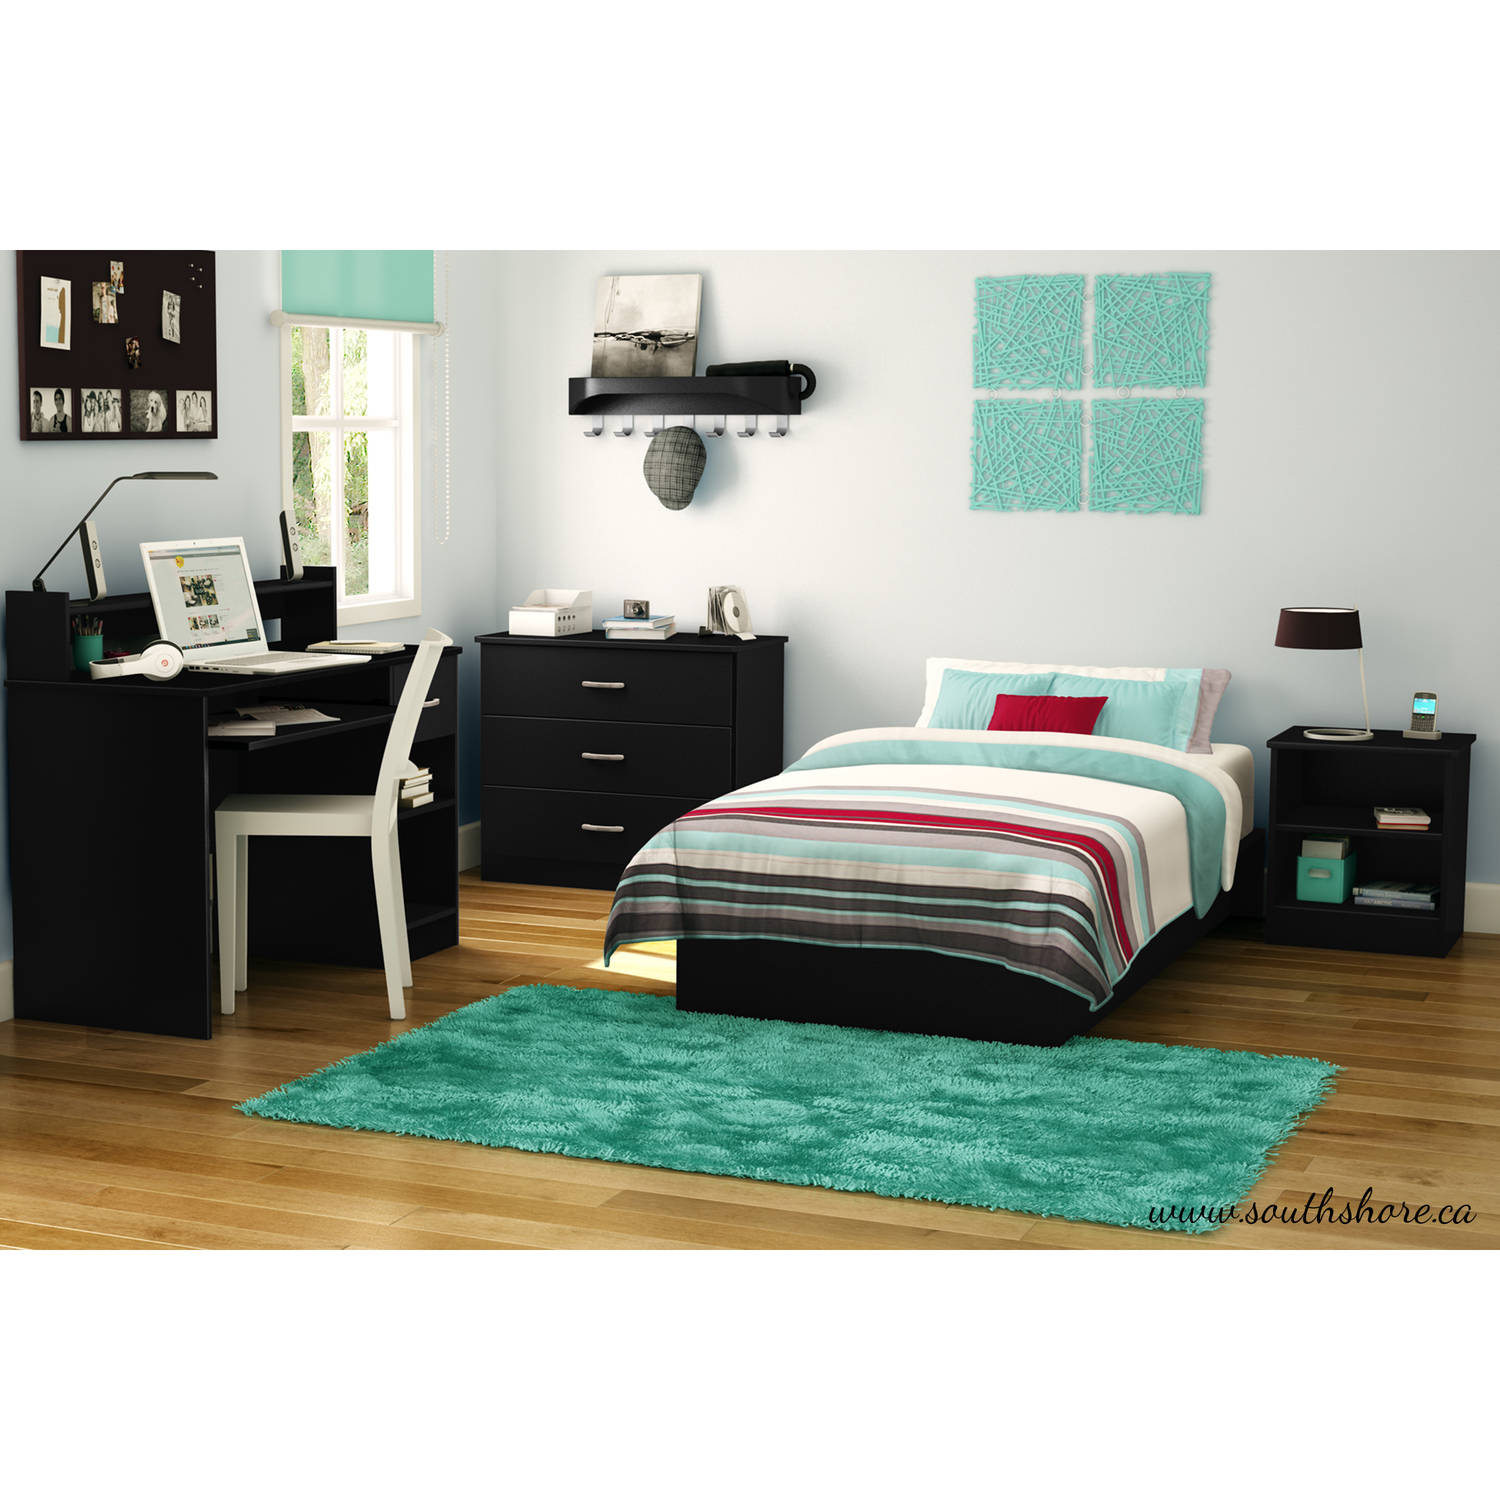 South Shore Smart Basics Piece Twin Bedroom Set Multiple